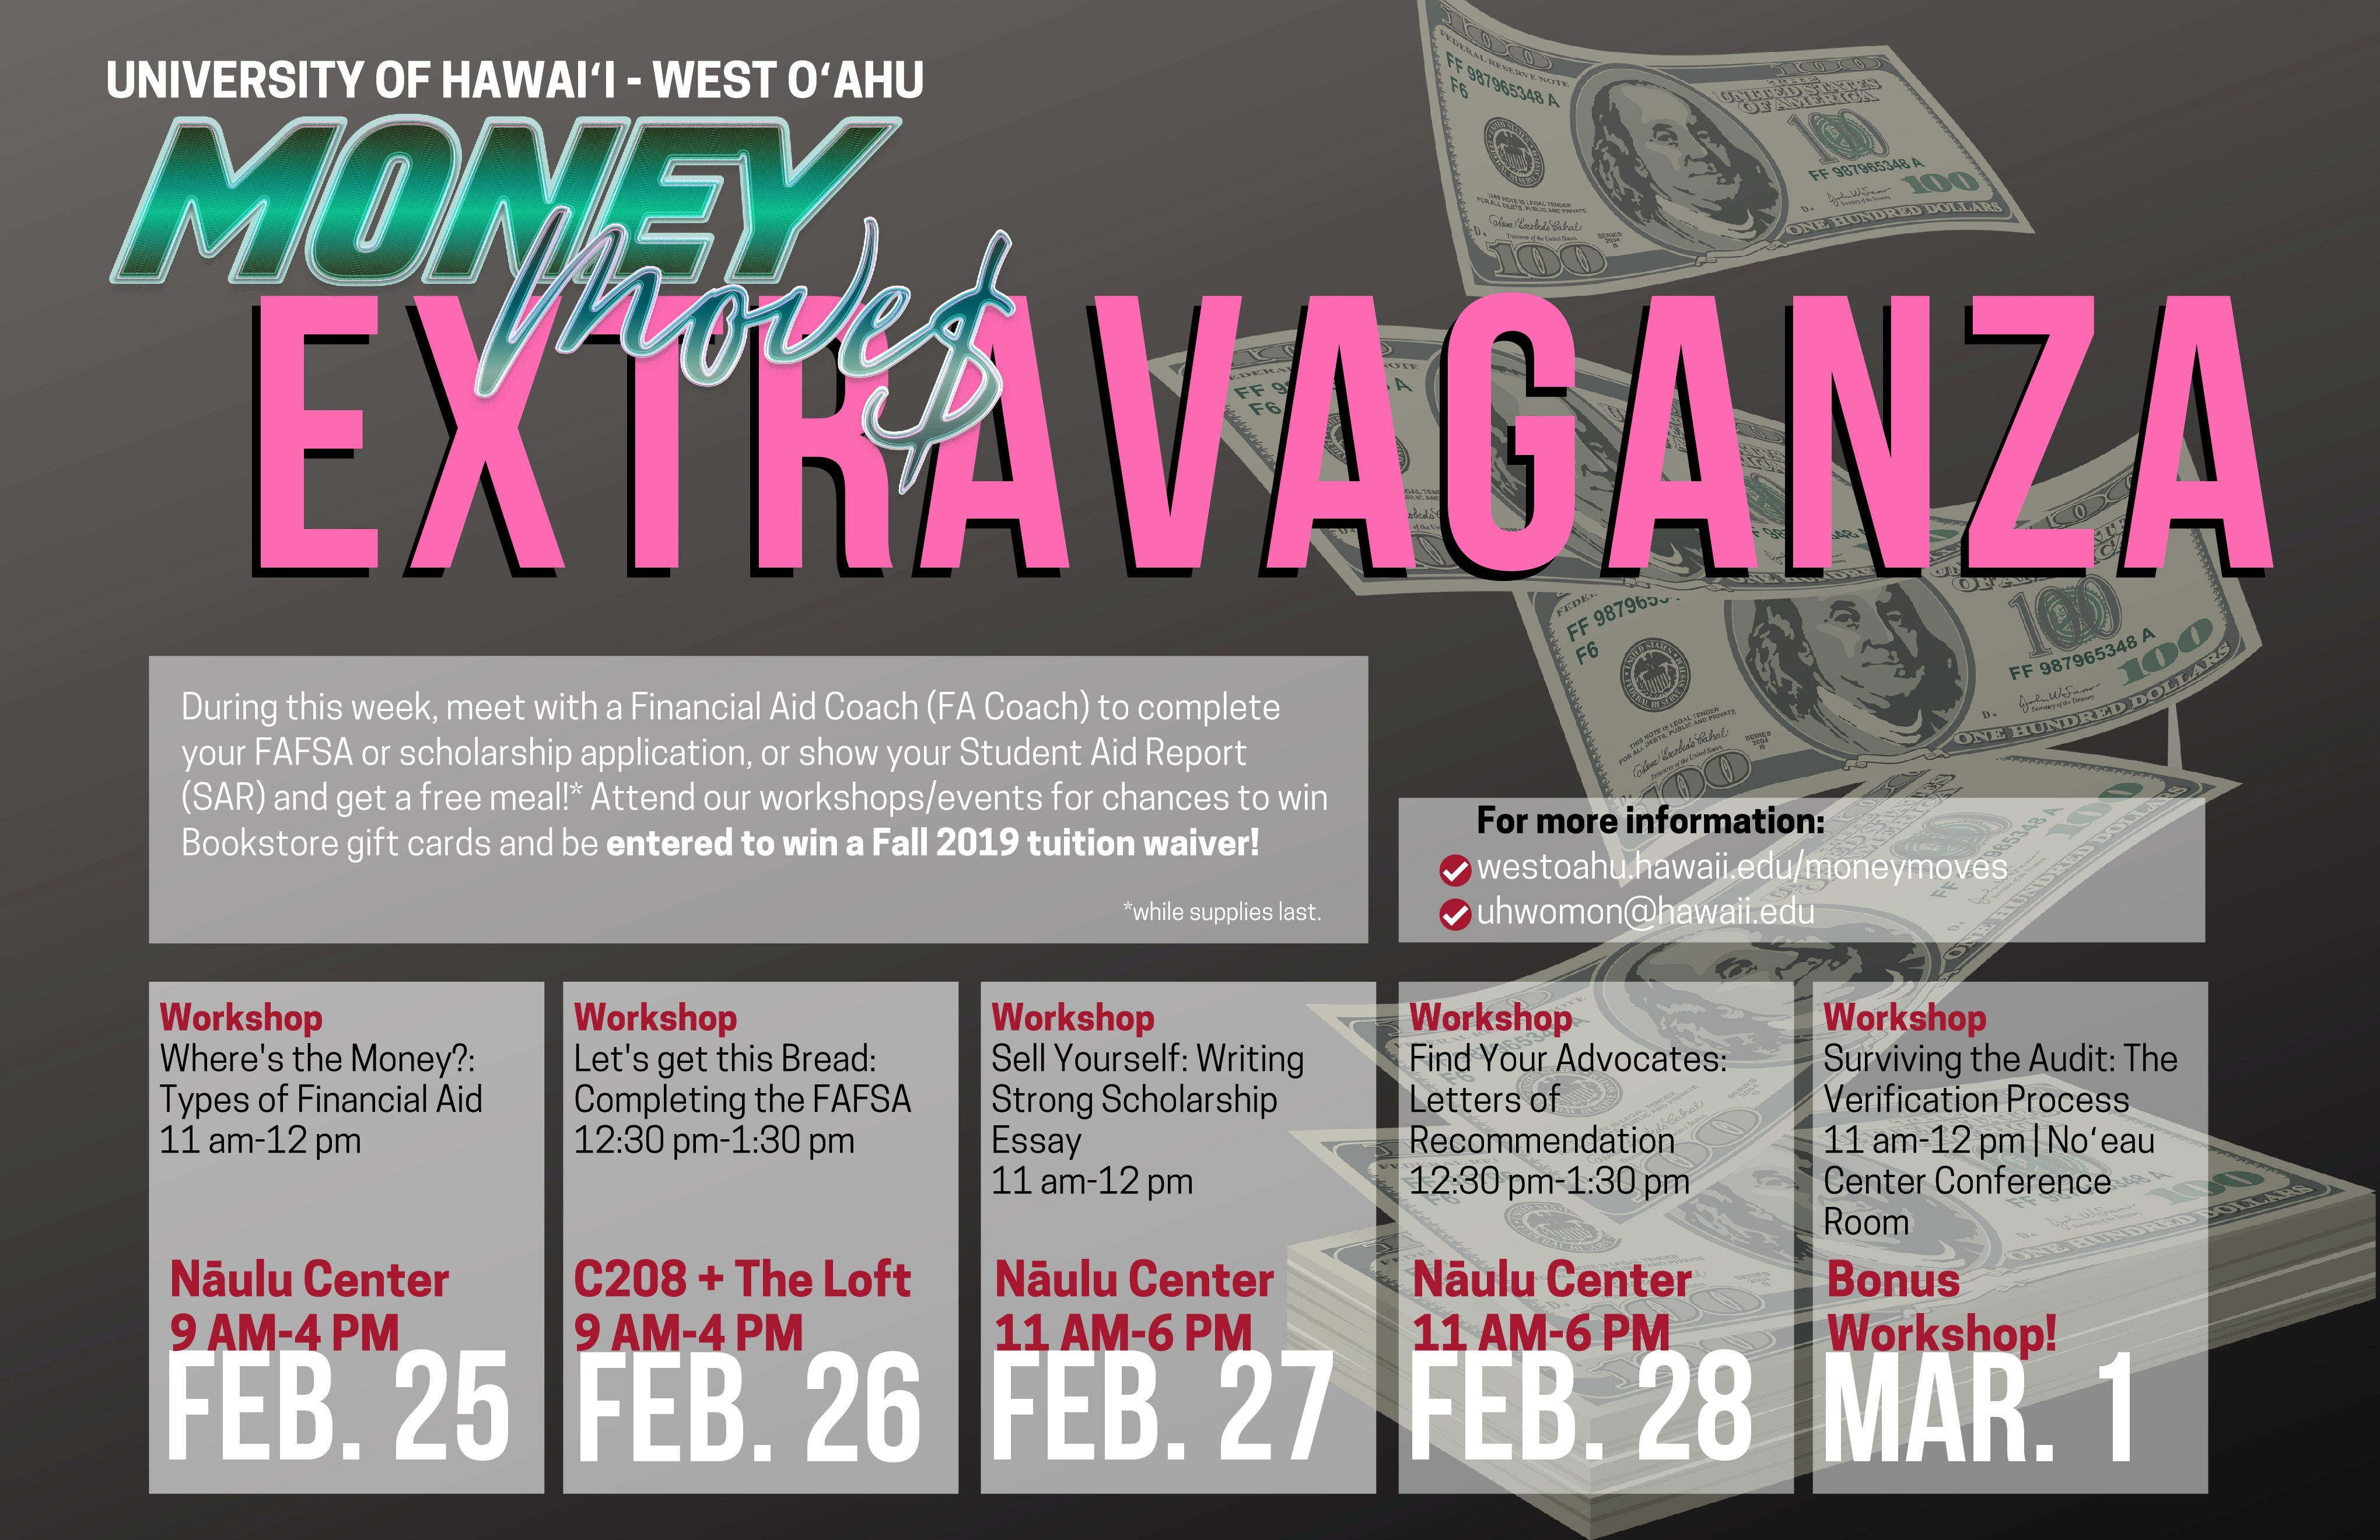 Flier for Money Move$ Extravaganza, listing out workshops running Feb. 25 to March 1 on the UH West Oahu campus.